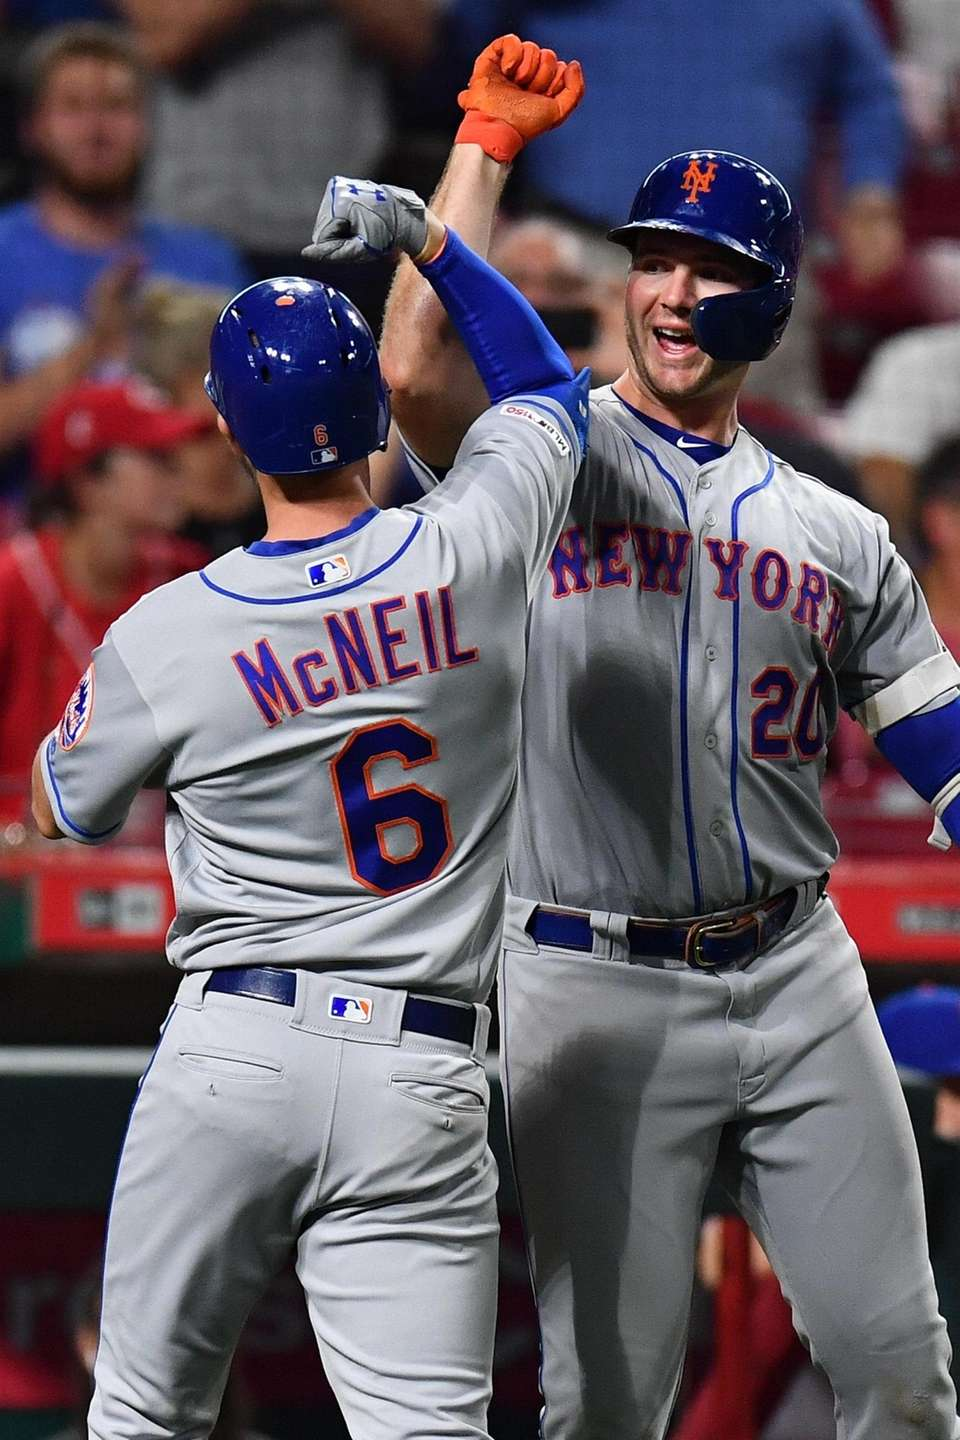 Pete Alonso of the Mets celebrates with Jeff